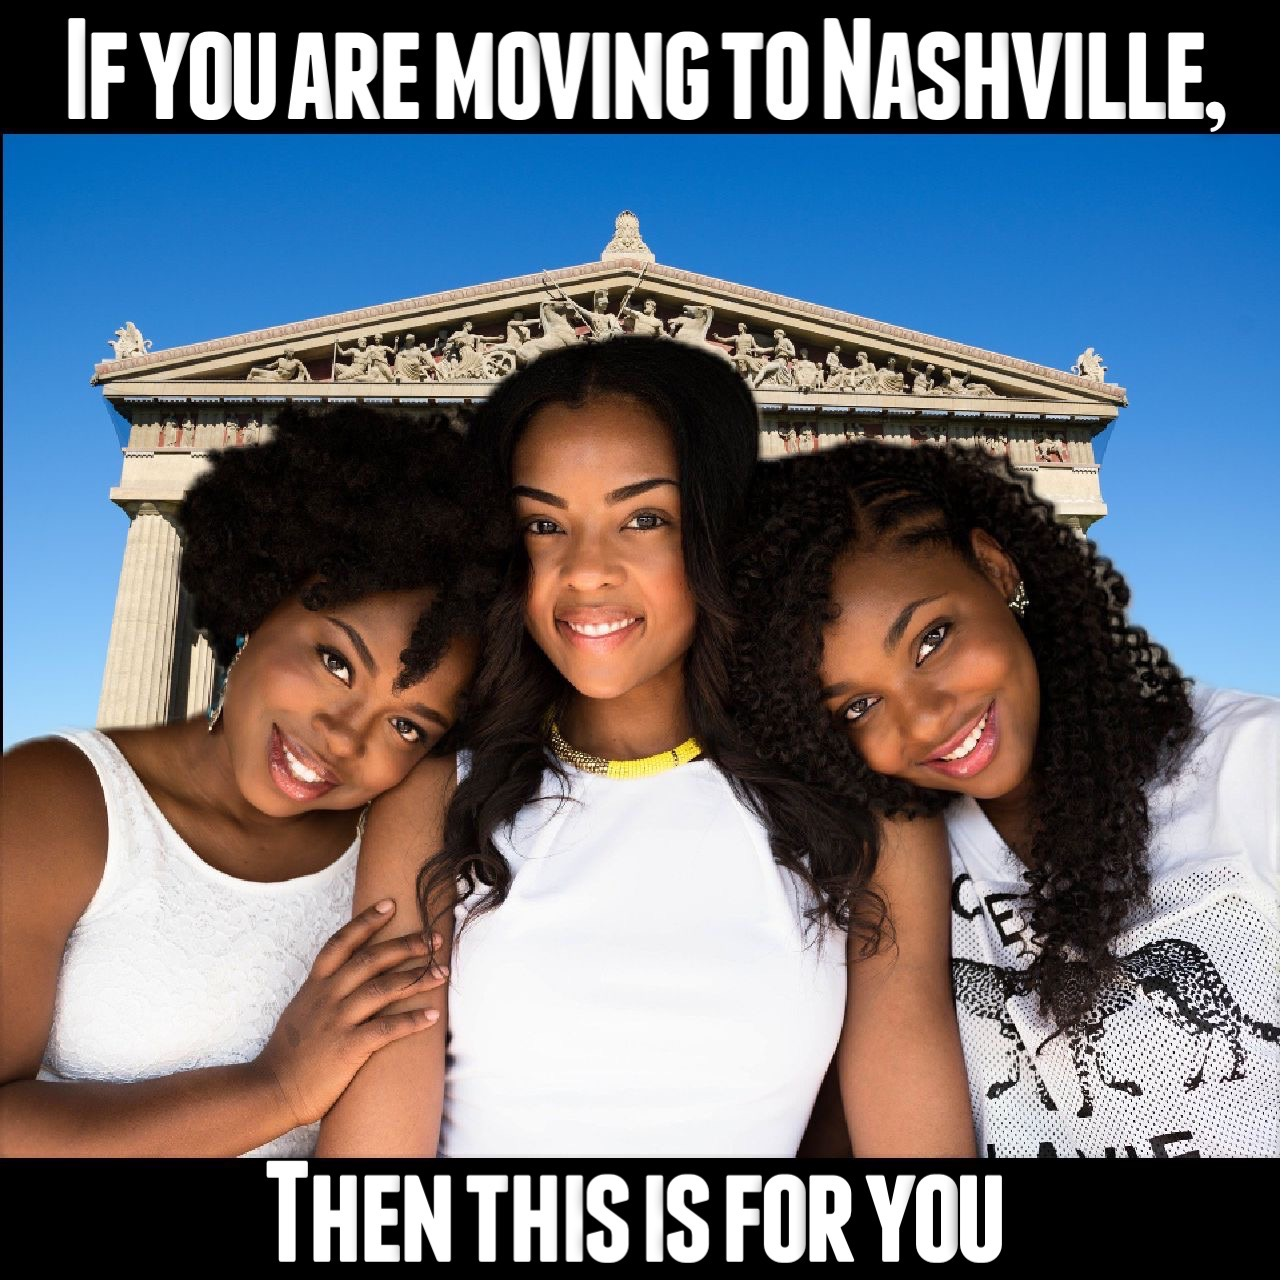 If you are moving to Nashville, you need this